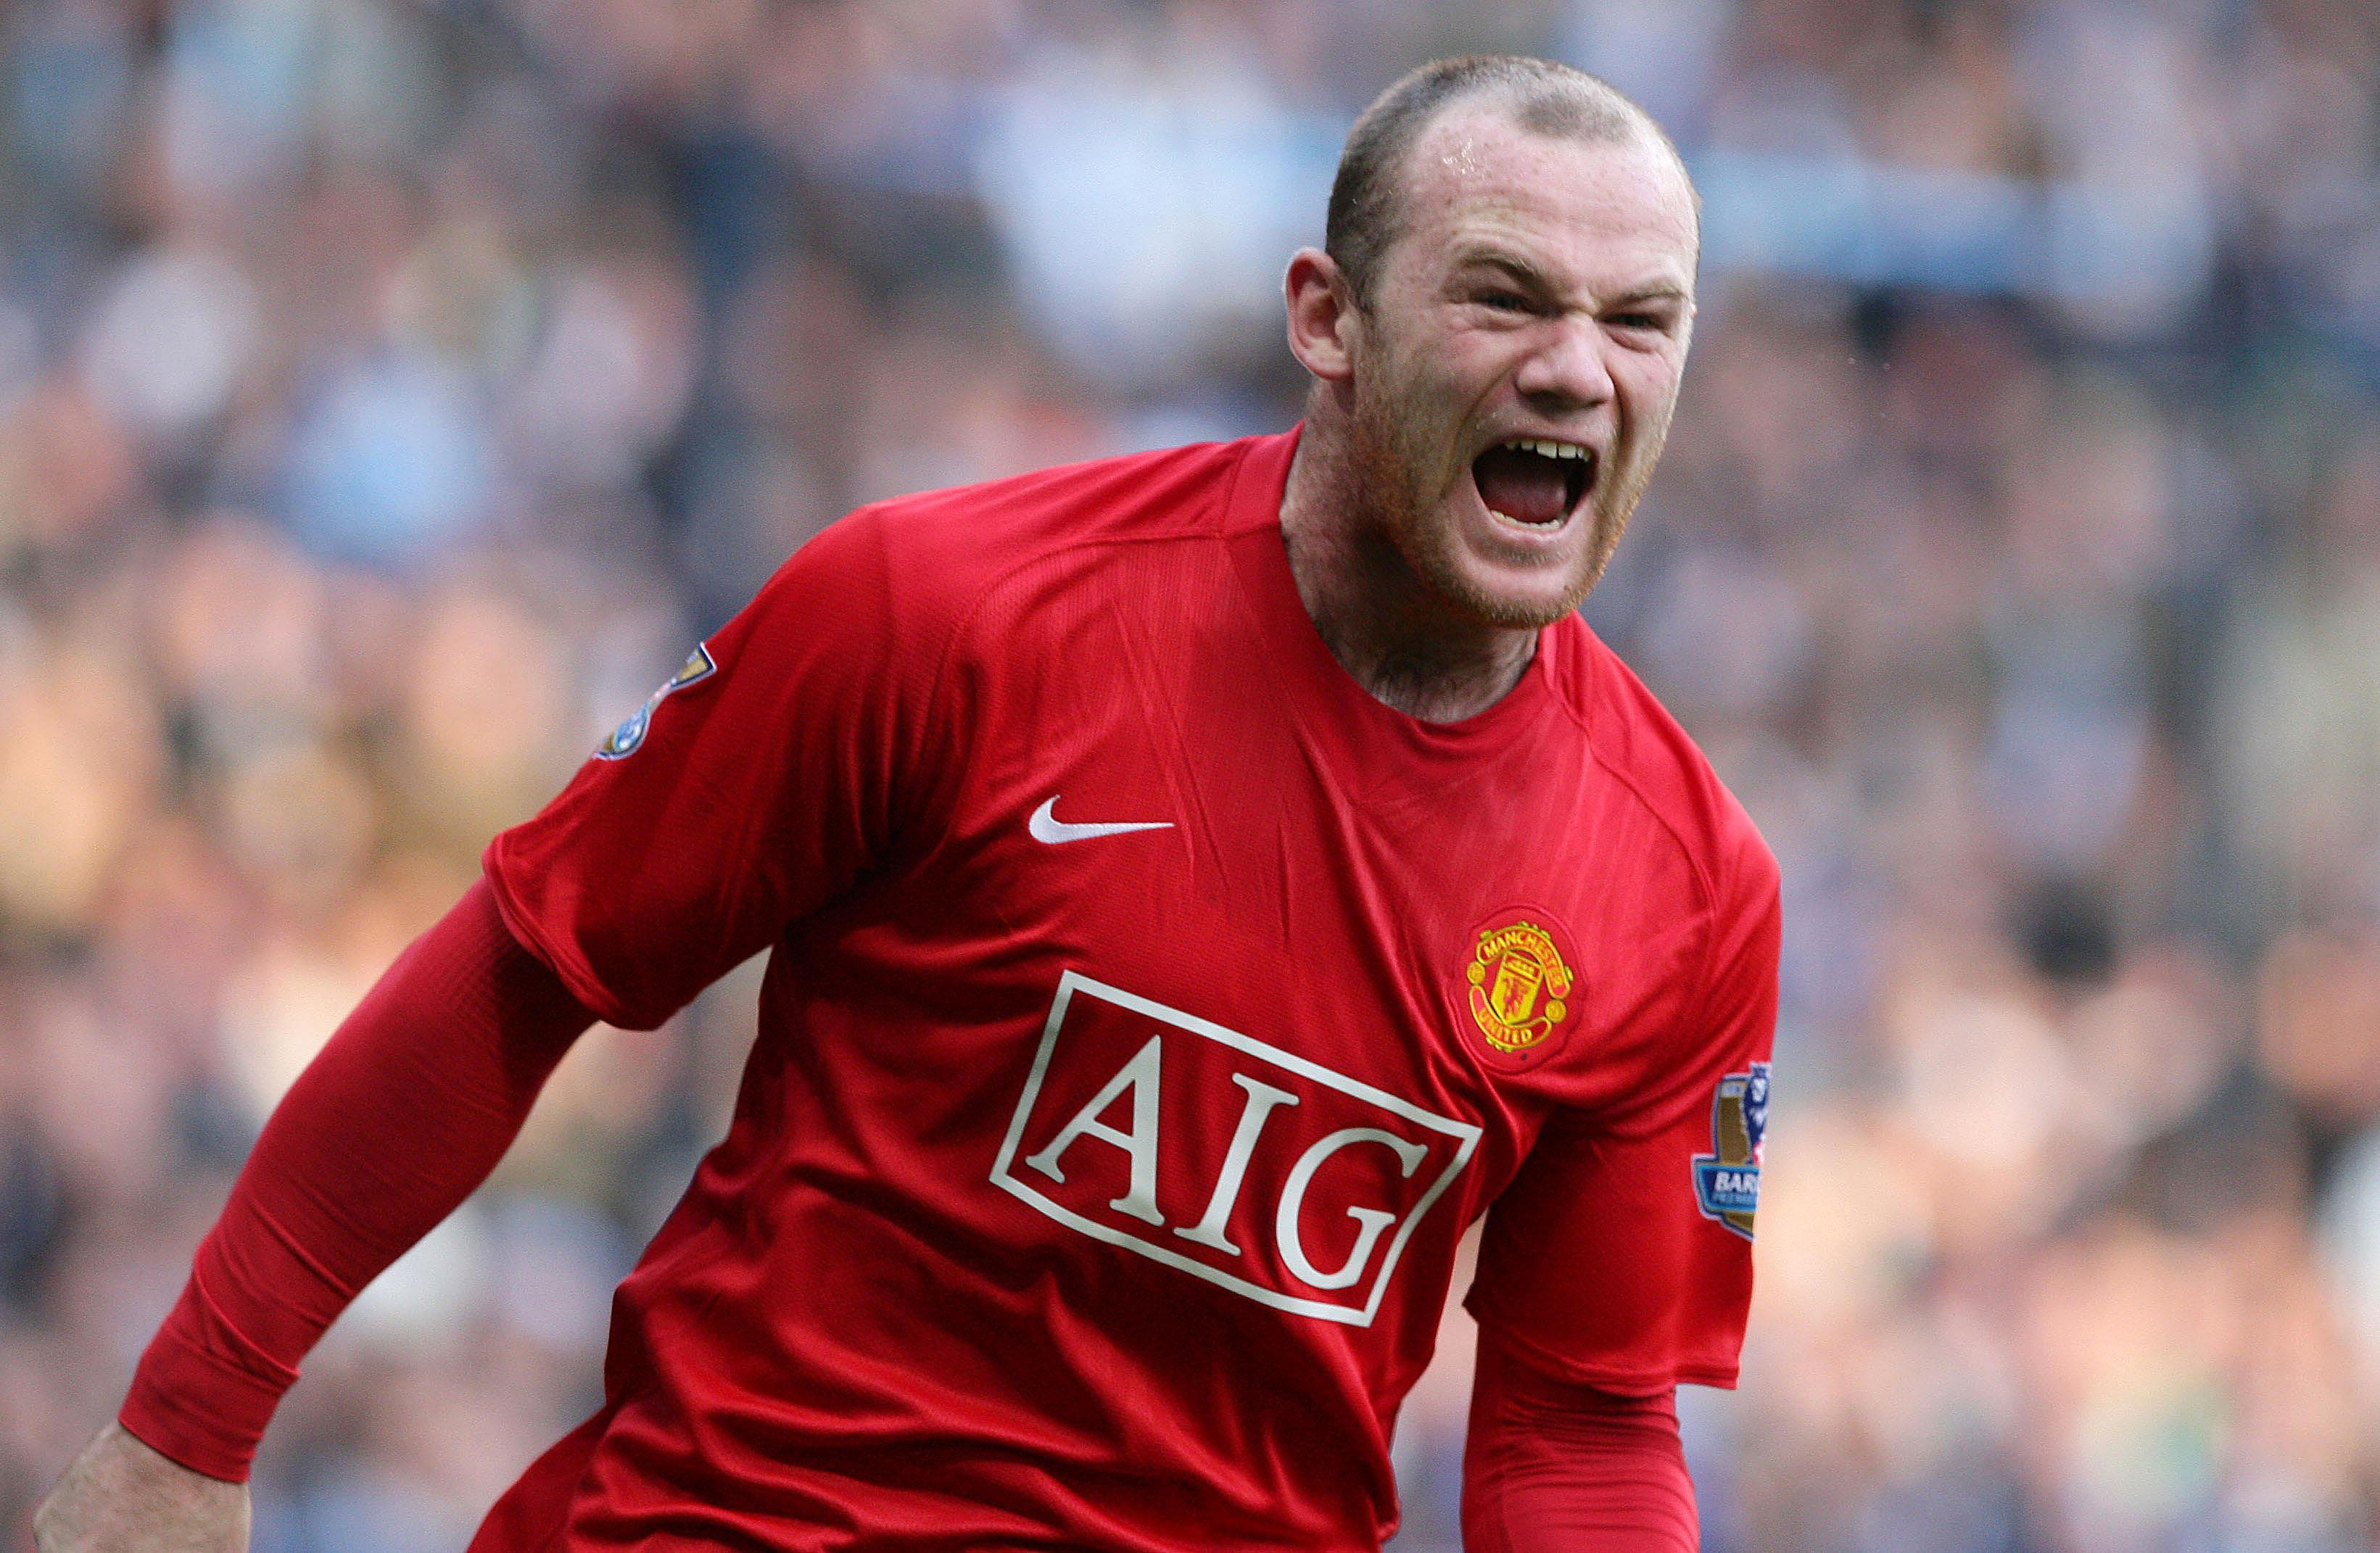 Rooney was an Old Trafford favourite for 13 years